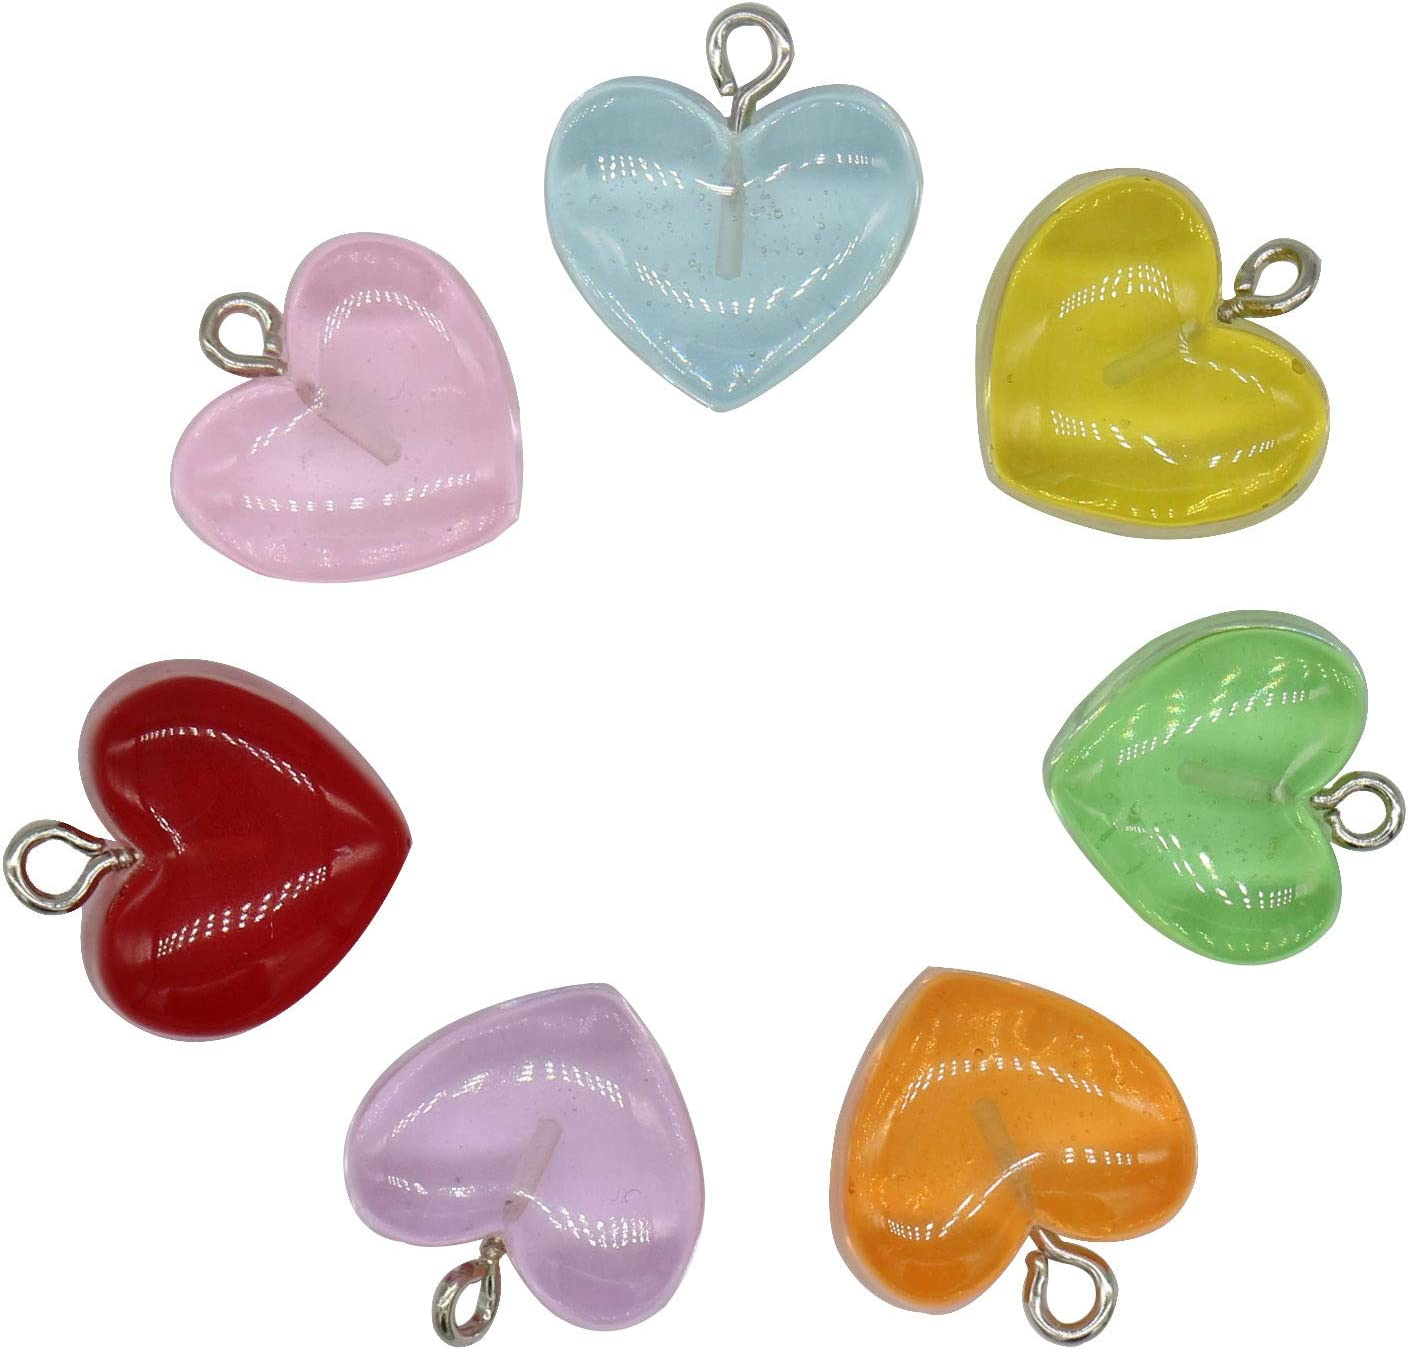 Gummy Heart Charms Pendant Colorful Love Heart Candy Valentines Day Pendant Charm Keychains Necklace Earring Pendant for DIY Jewelry Crafts Supplies